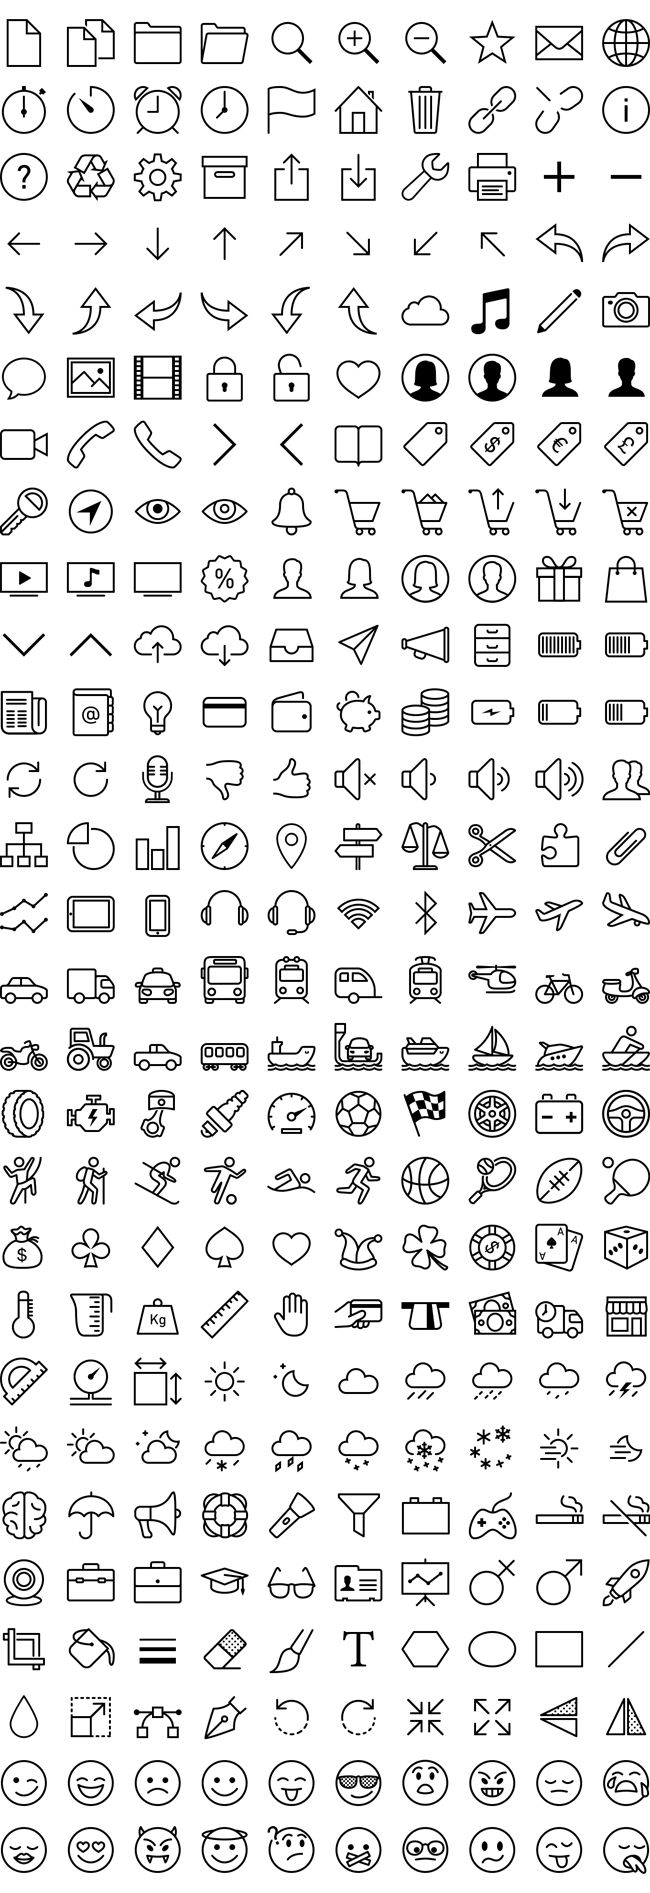 280 Free iOS7 Icons Vector Pack - Free Vector Site | Download Free Vector Art, Graphics                                                                                                                                                                                 Mais